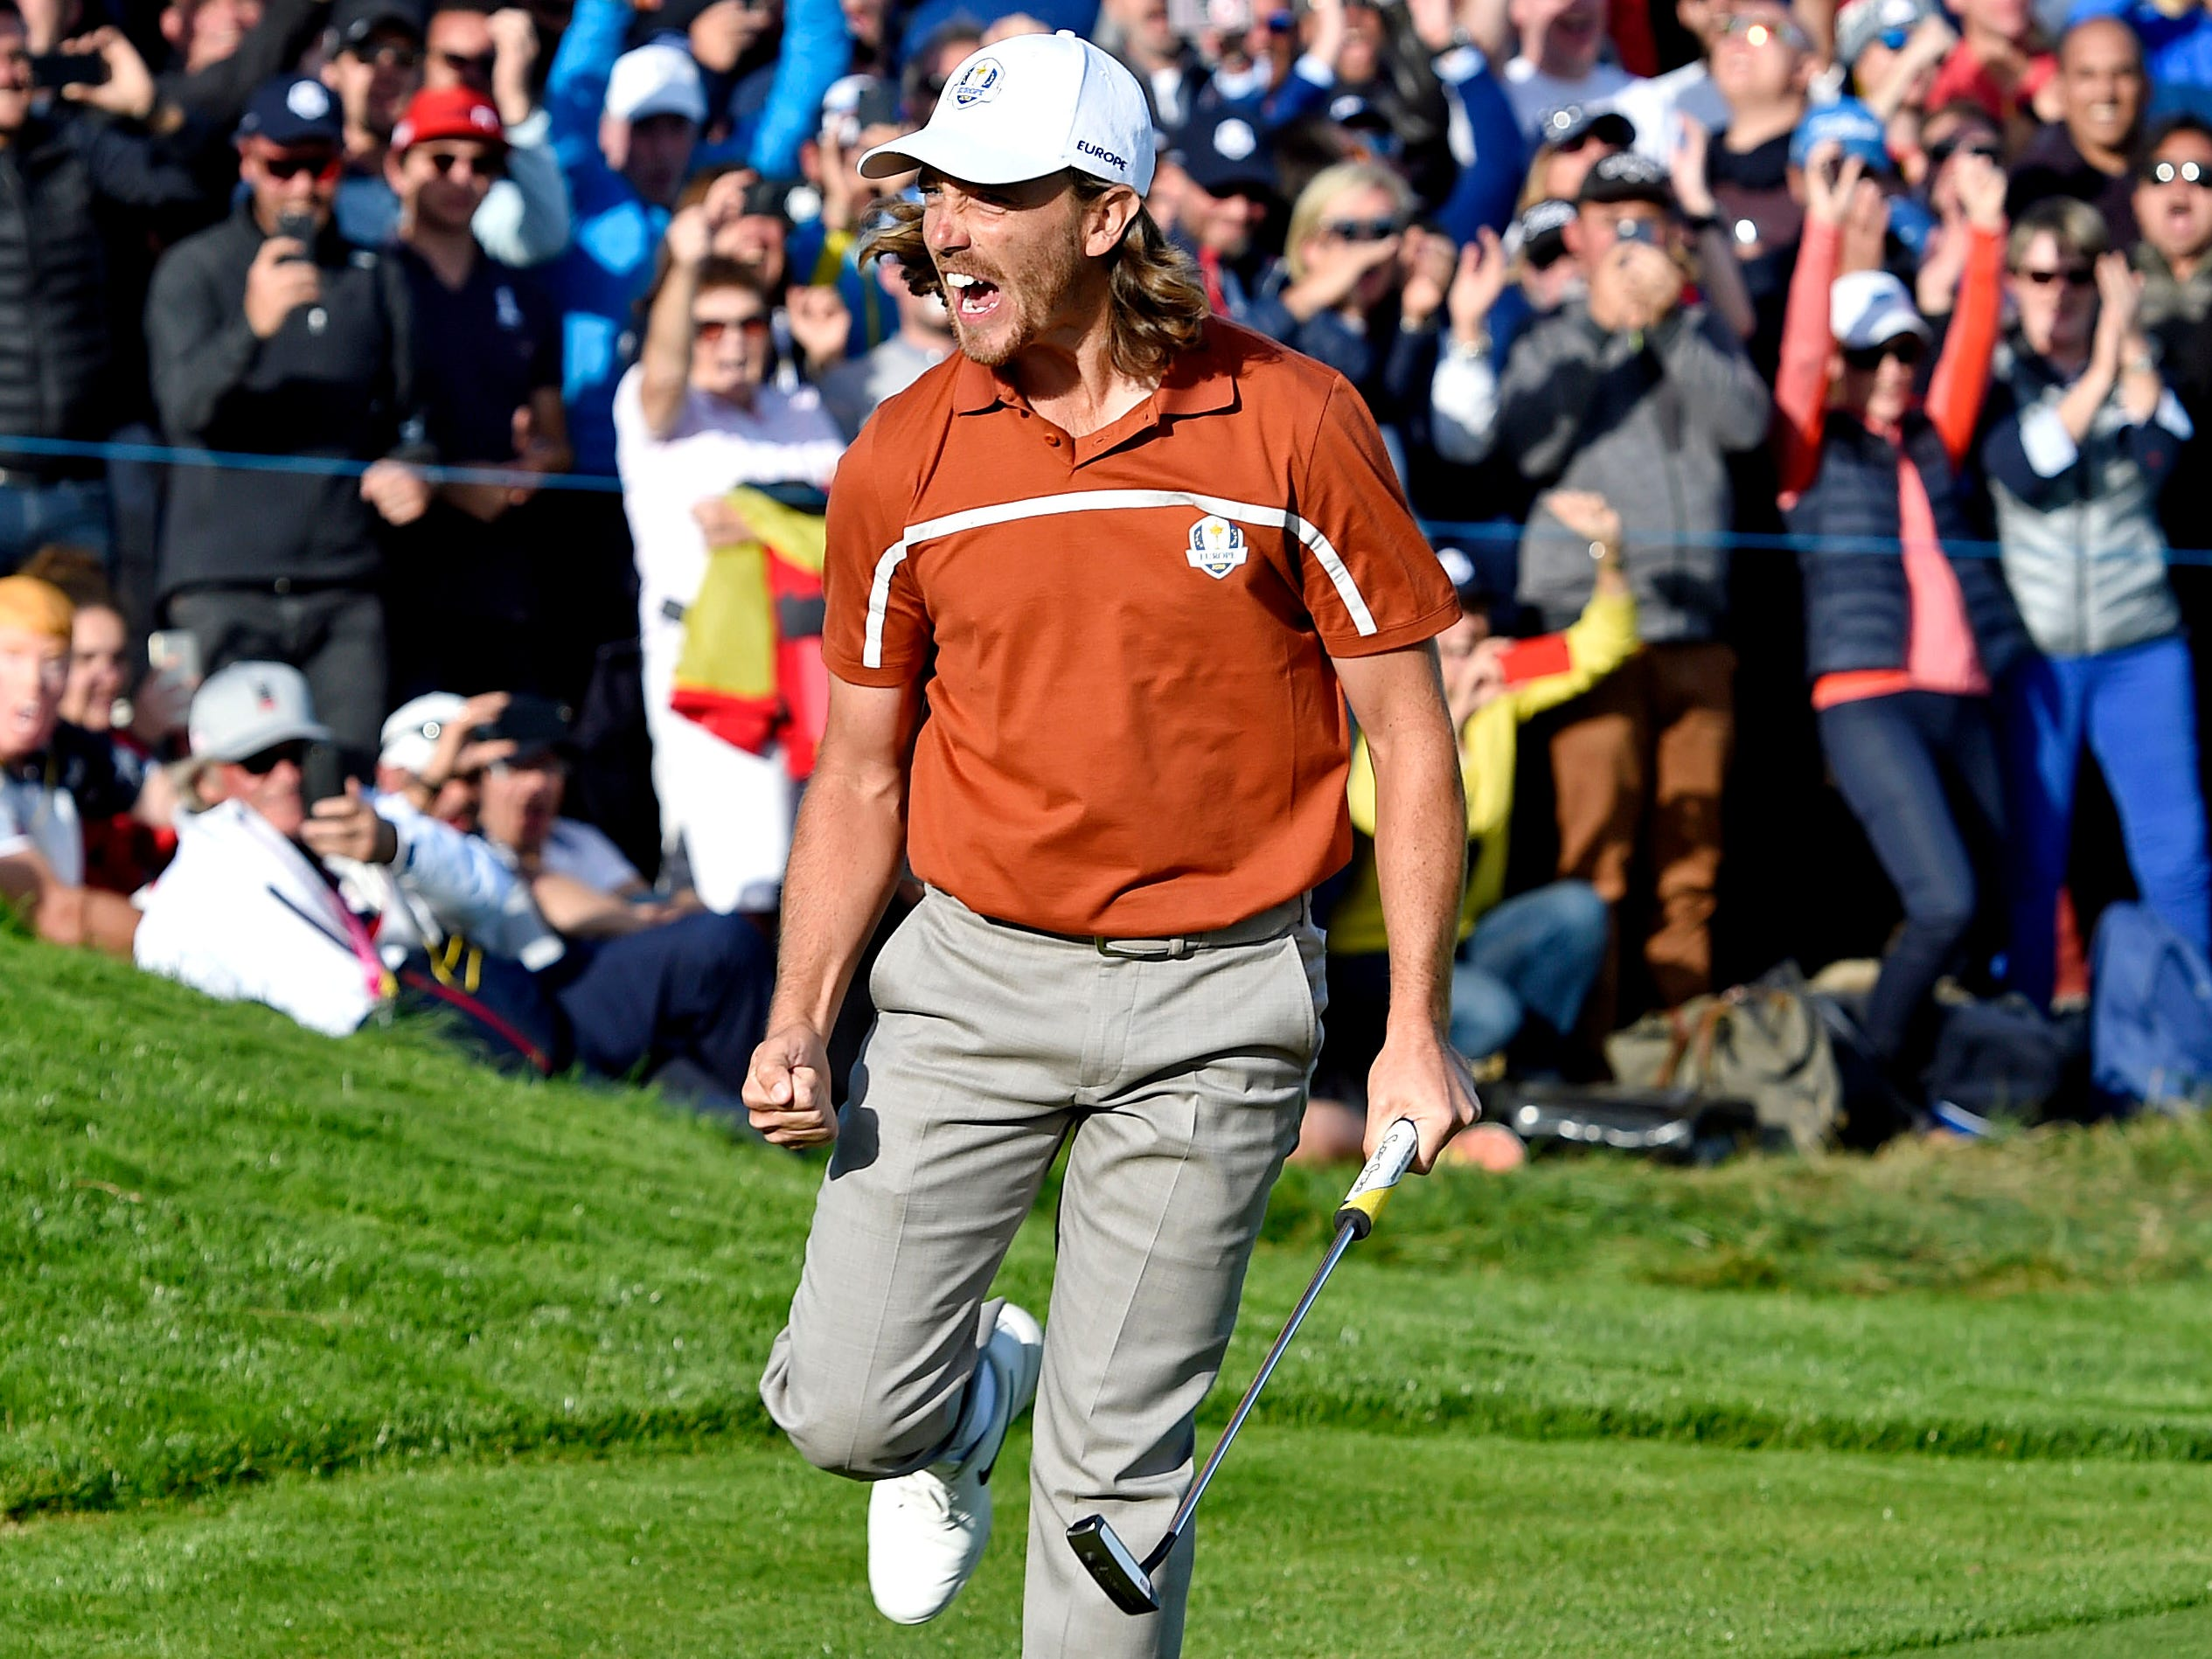 Europe's Tommy Fleetwood celebrates on the 12th green during the Saturday afternoon matches.